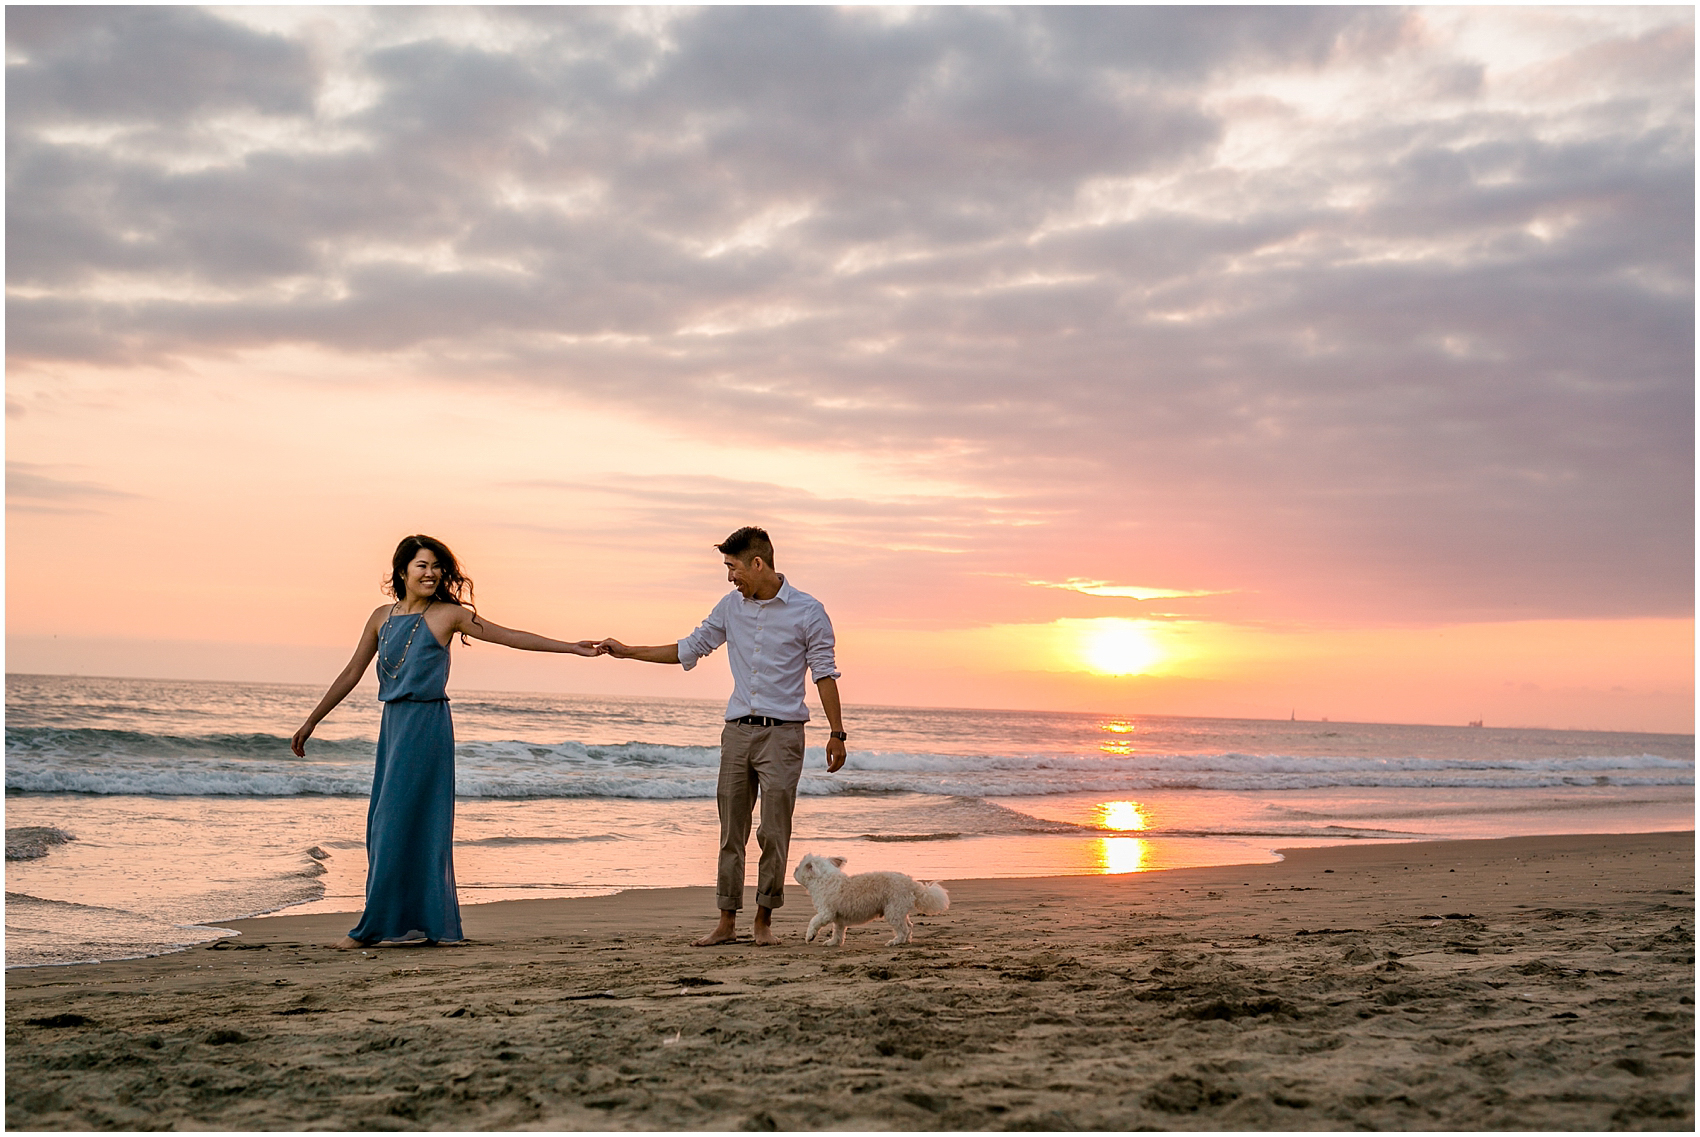 Newport Beach Engagement Photography Smetona Photo Bonnie Tim-0026.jpg